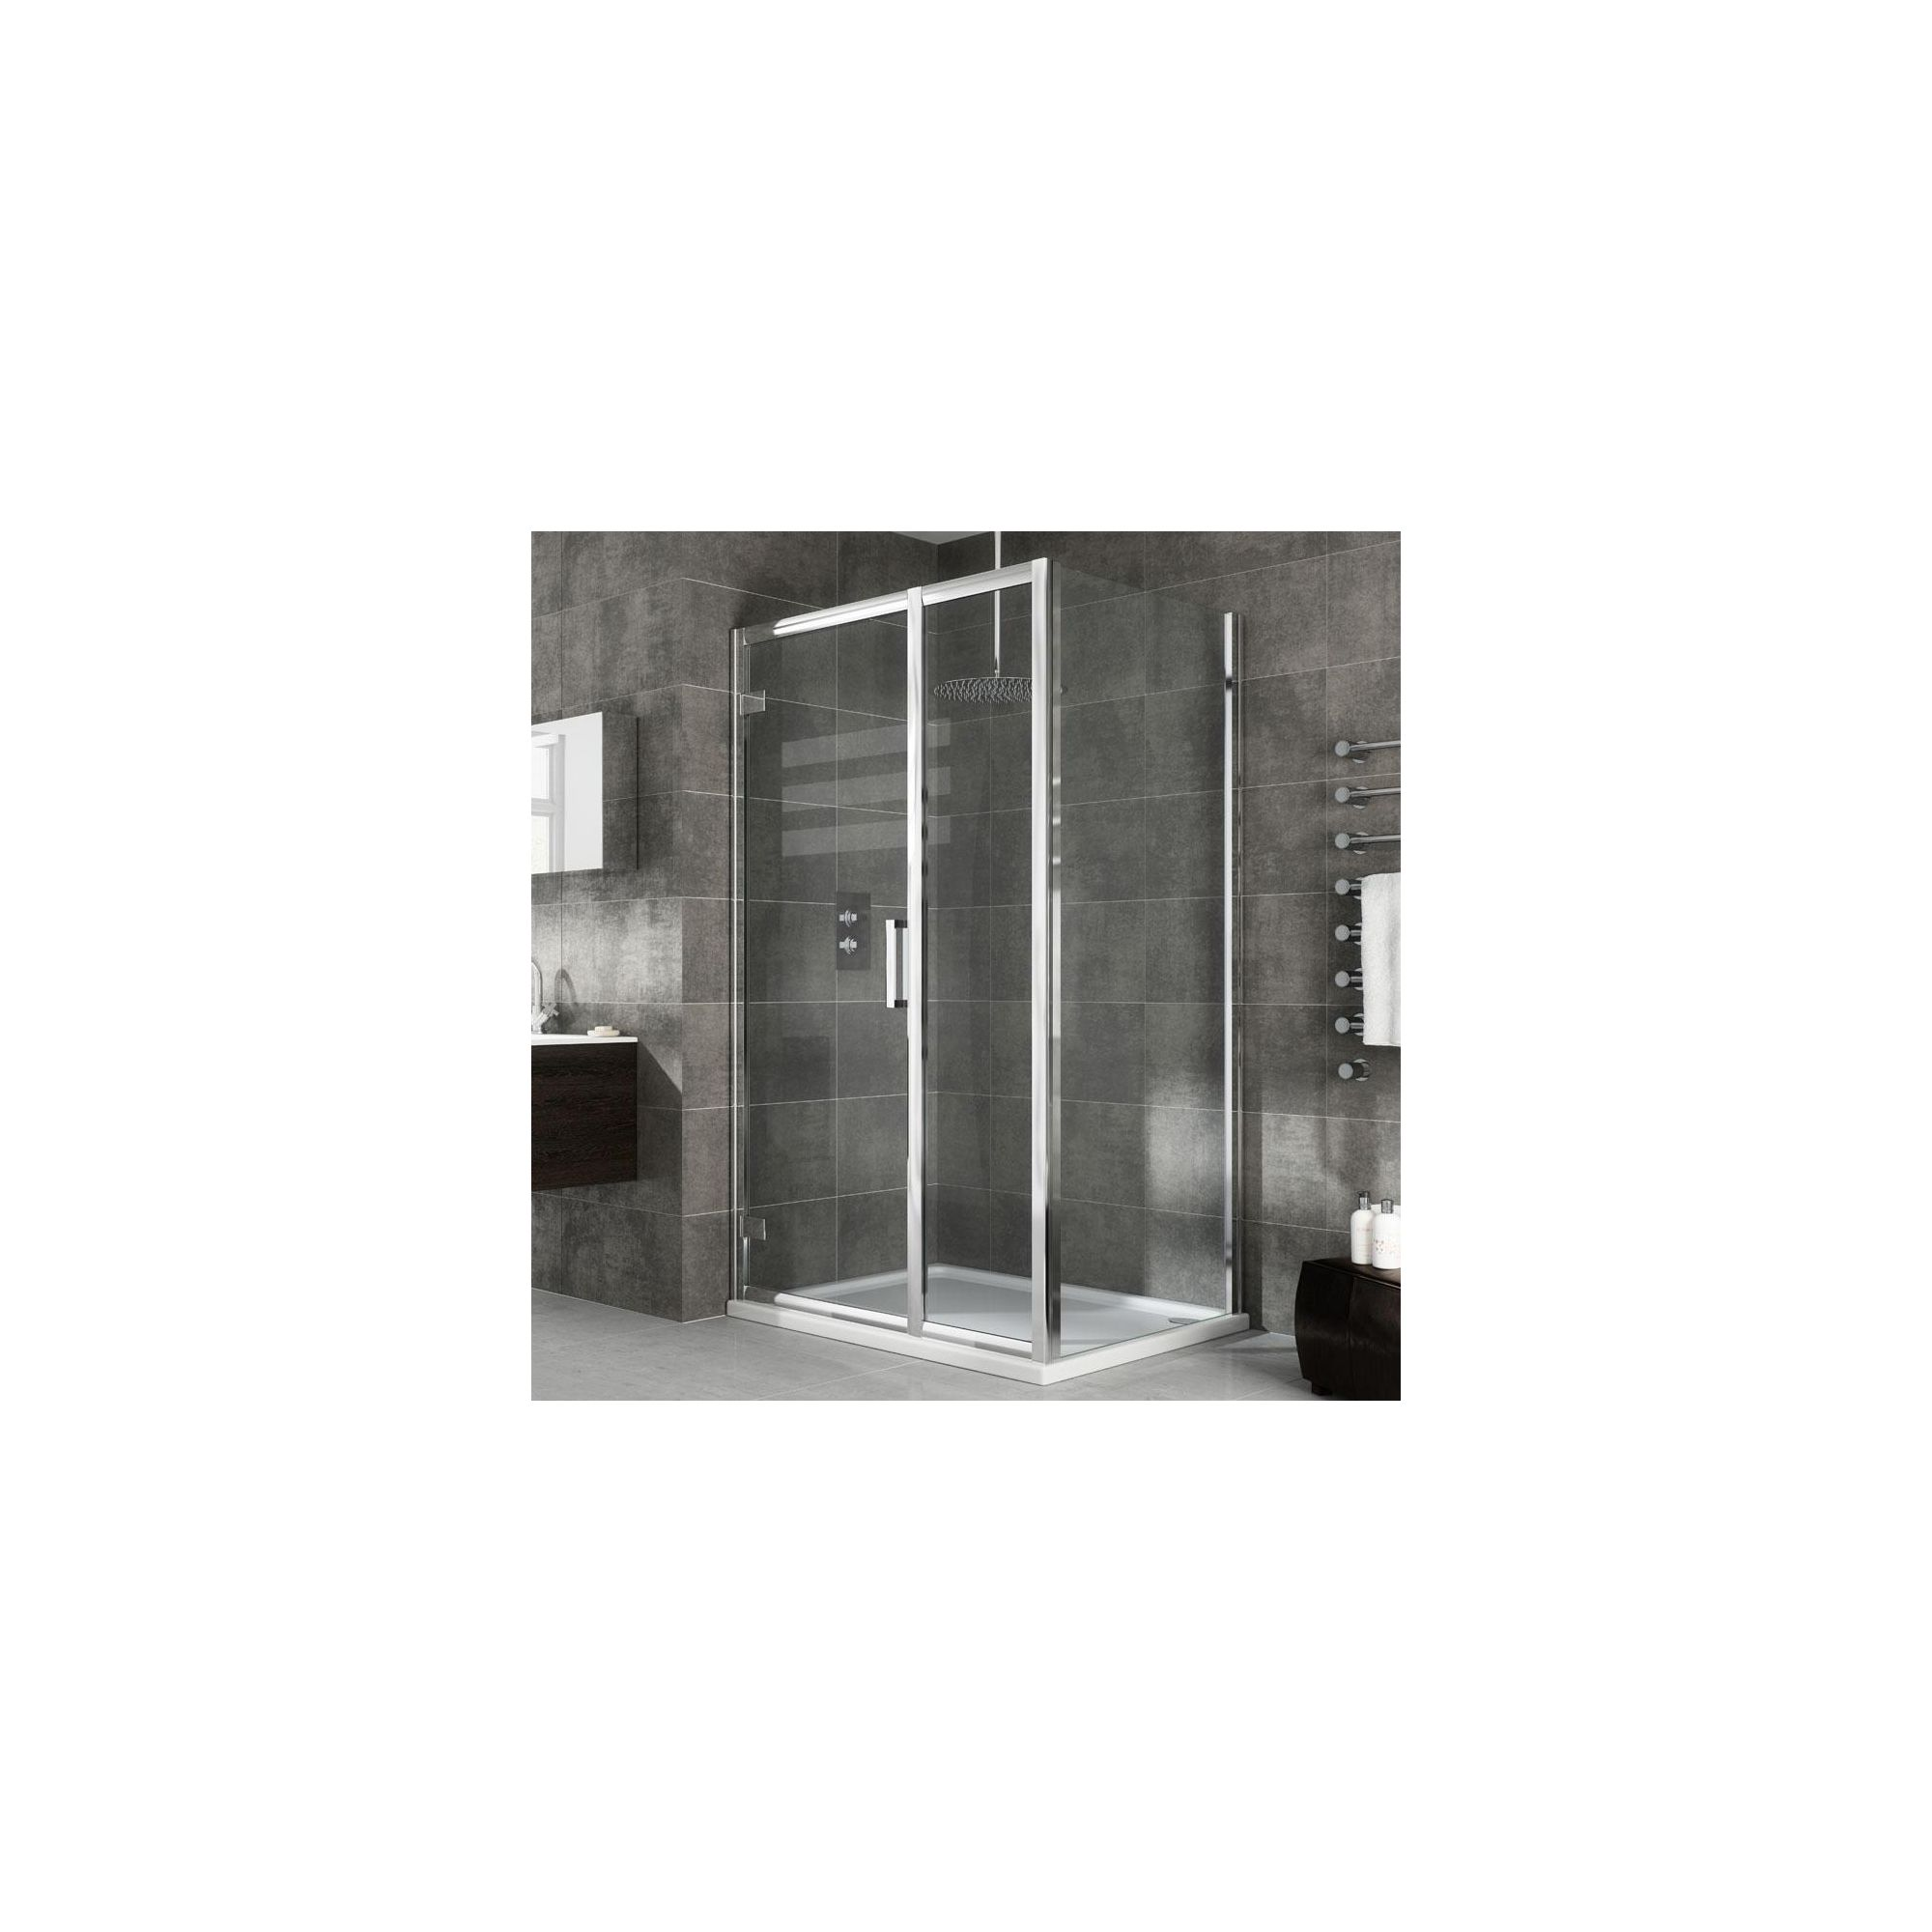 Elemis Eternity Inline Hinged Door Shower Enclosure, 1000mm x 1000mm, 8mm Glass, Low Profile Tray at Tesco Direct